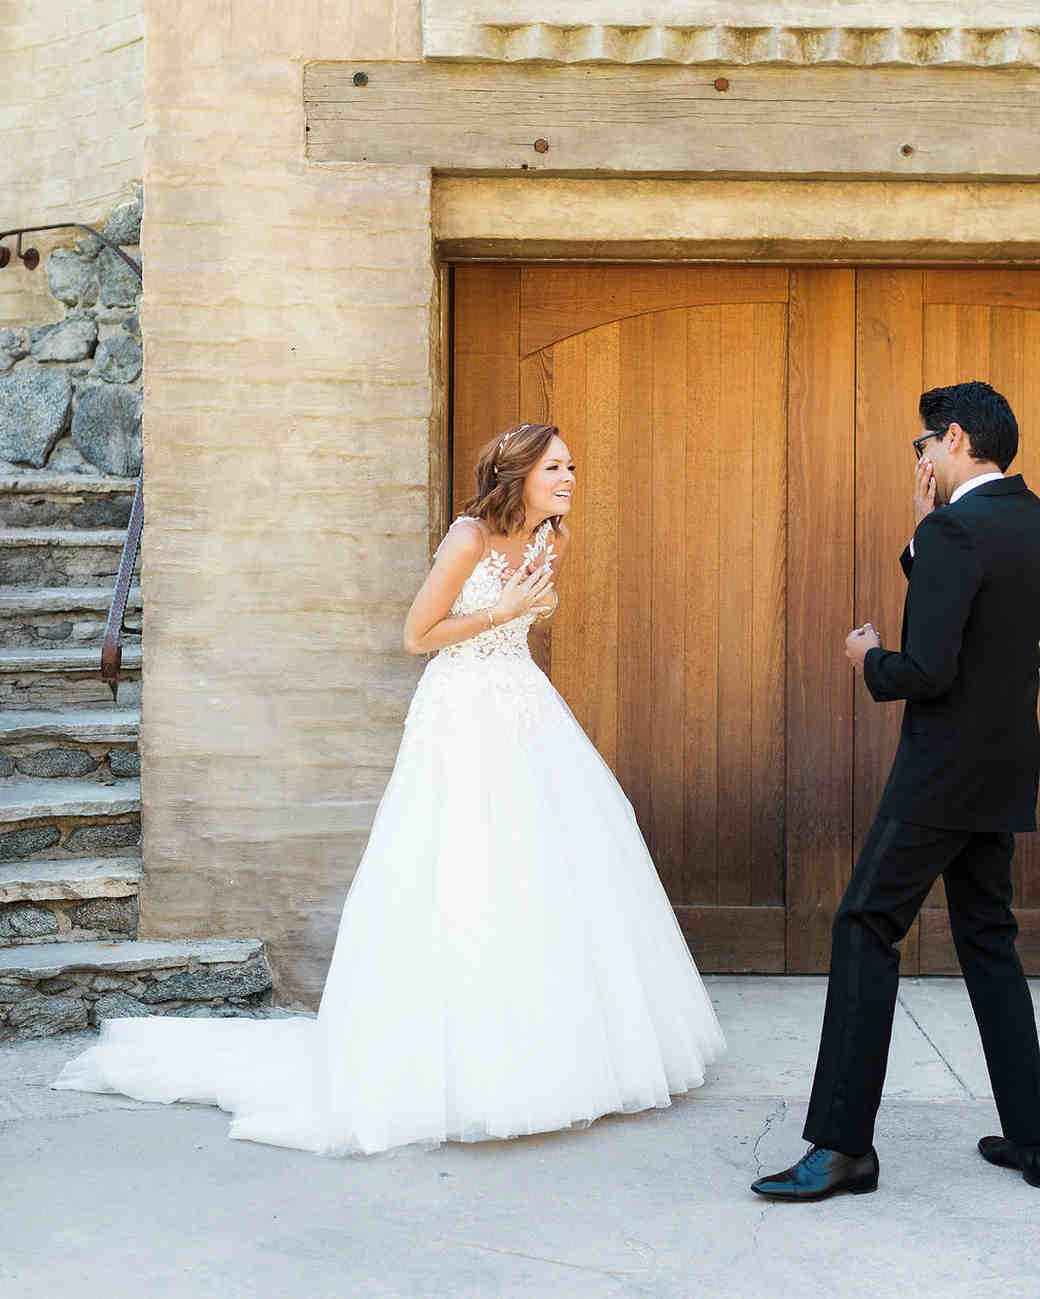 Most revealing wedding dresses ever  emily adhir wedding first look  REAL BRIDES  Pinterest  Palm